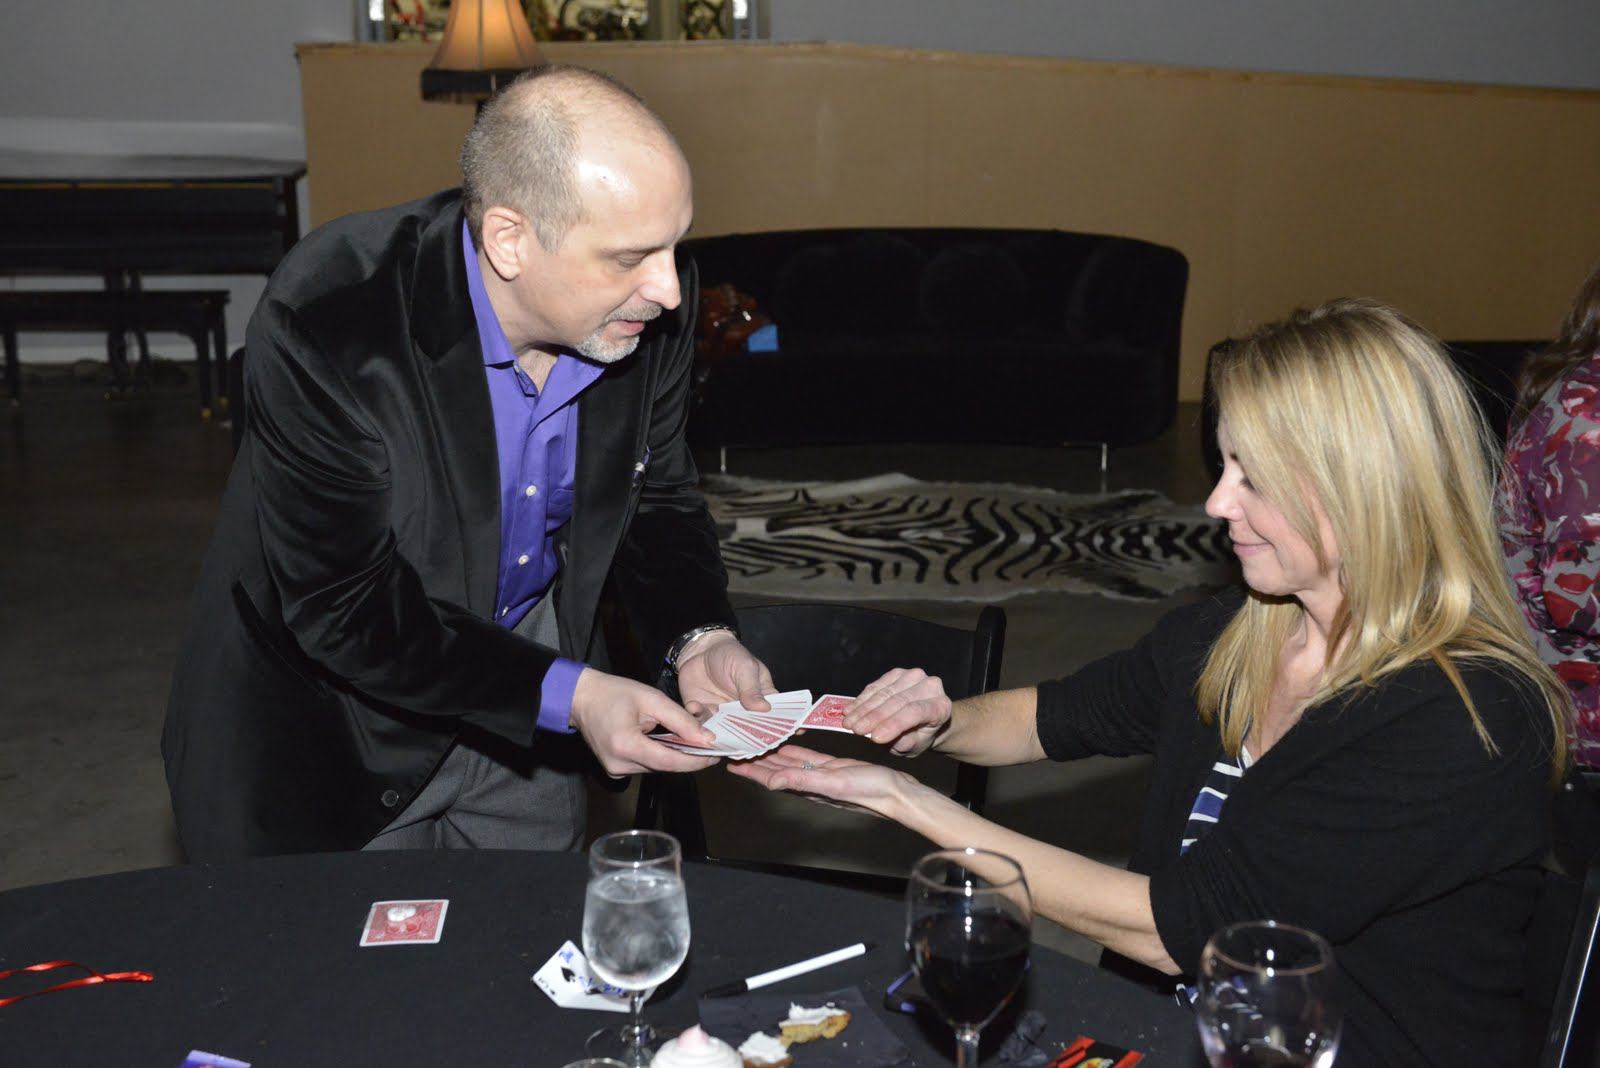 Comedy magician Steve Barcellona at EO St louis event performing strolling magic.